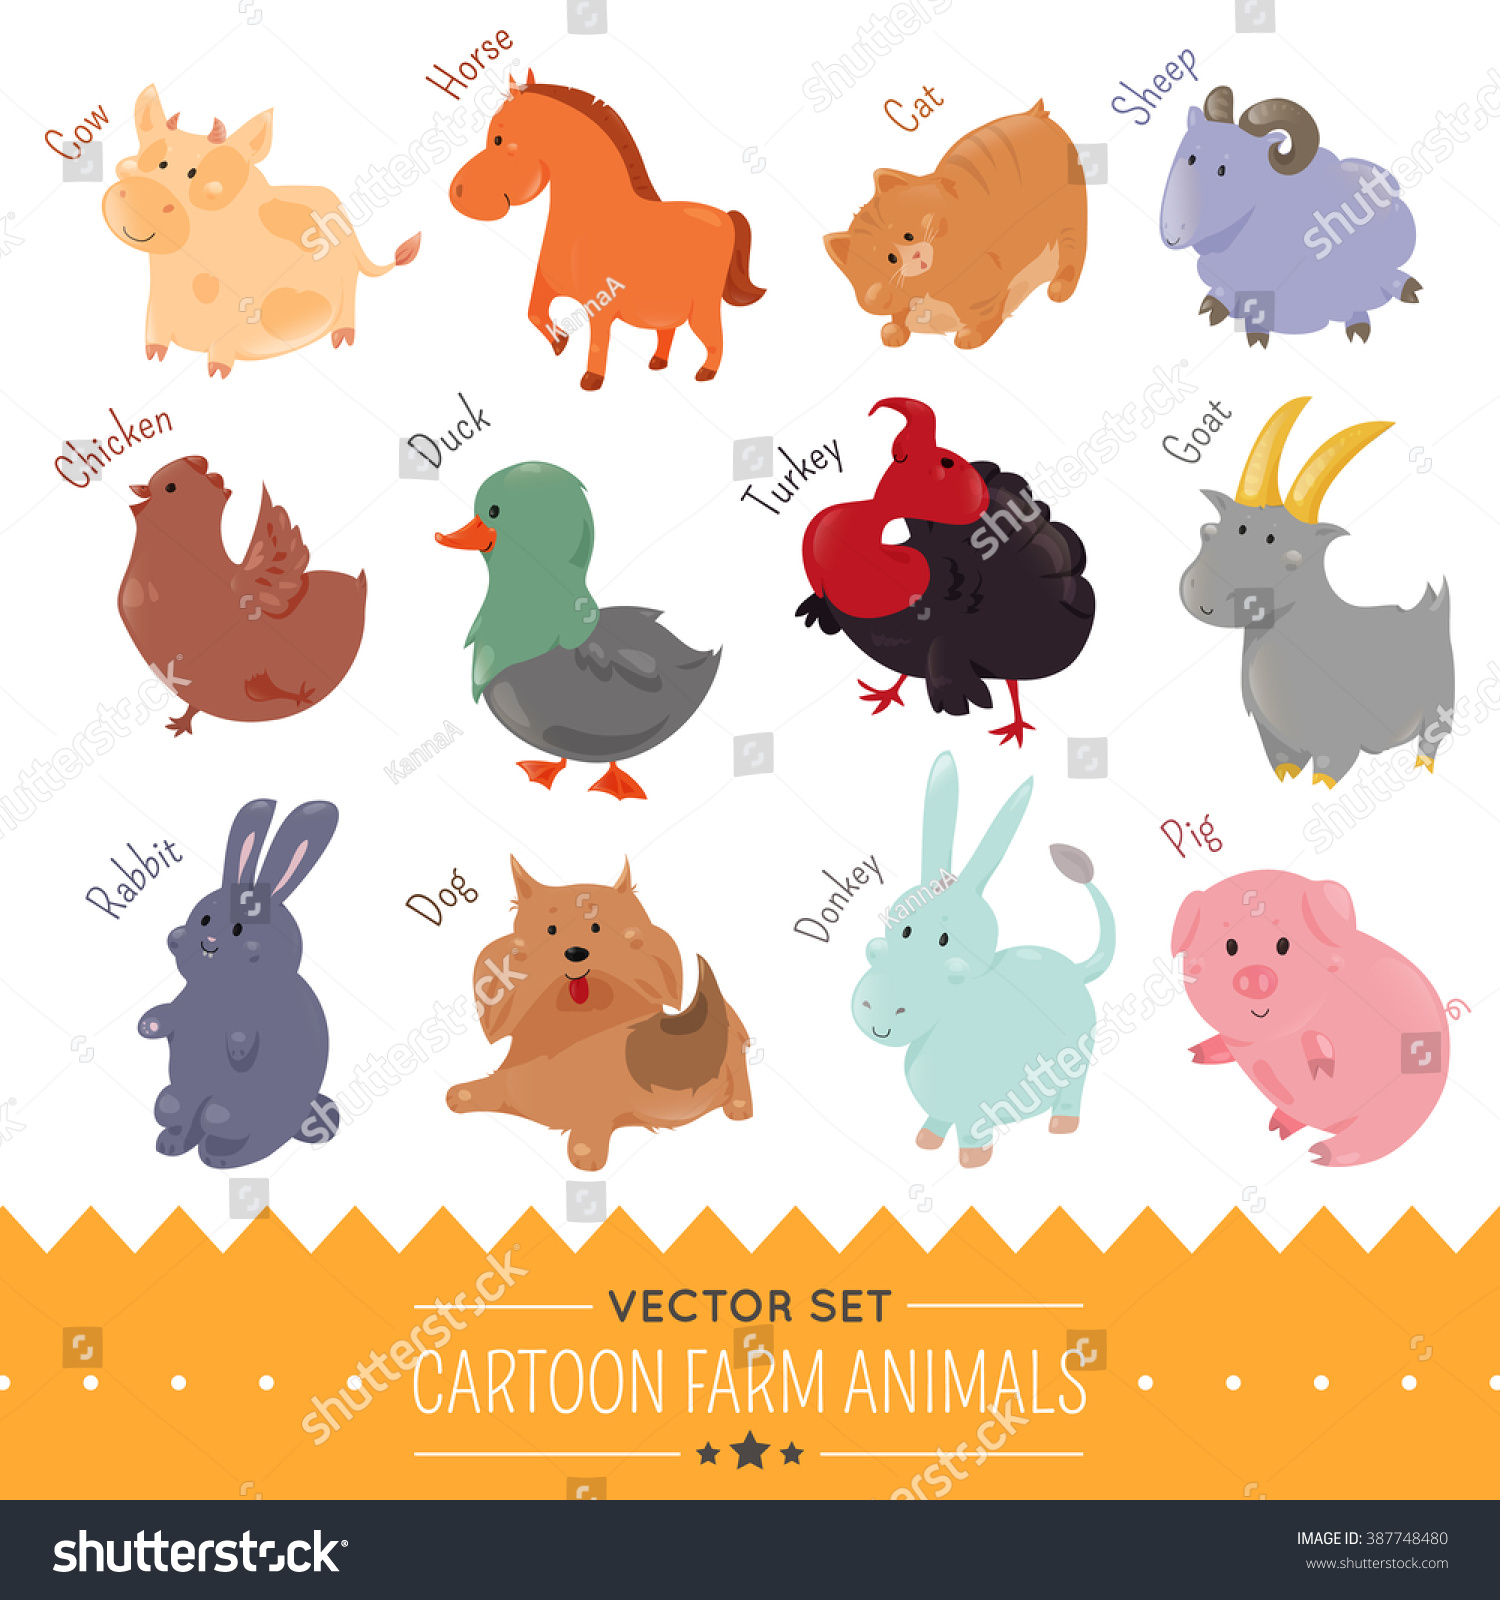 Agri cultures project logo duckdog design - Set Of Cute Cartoon Farm Animal Isolate On White Background Vector Agriculture Funny Flat